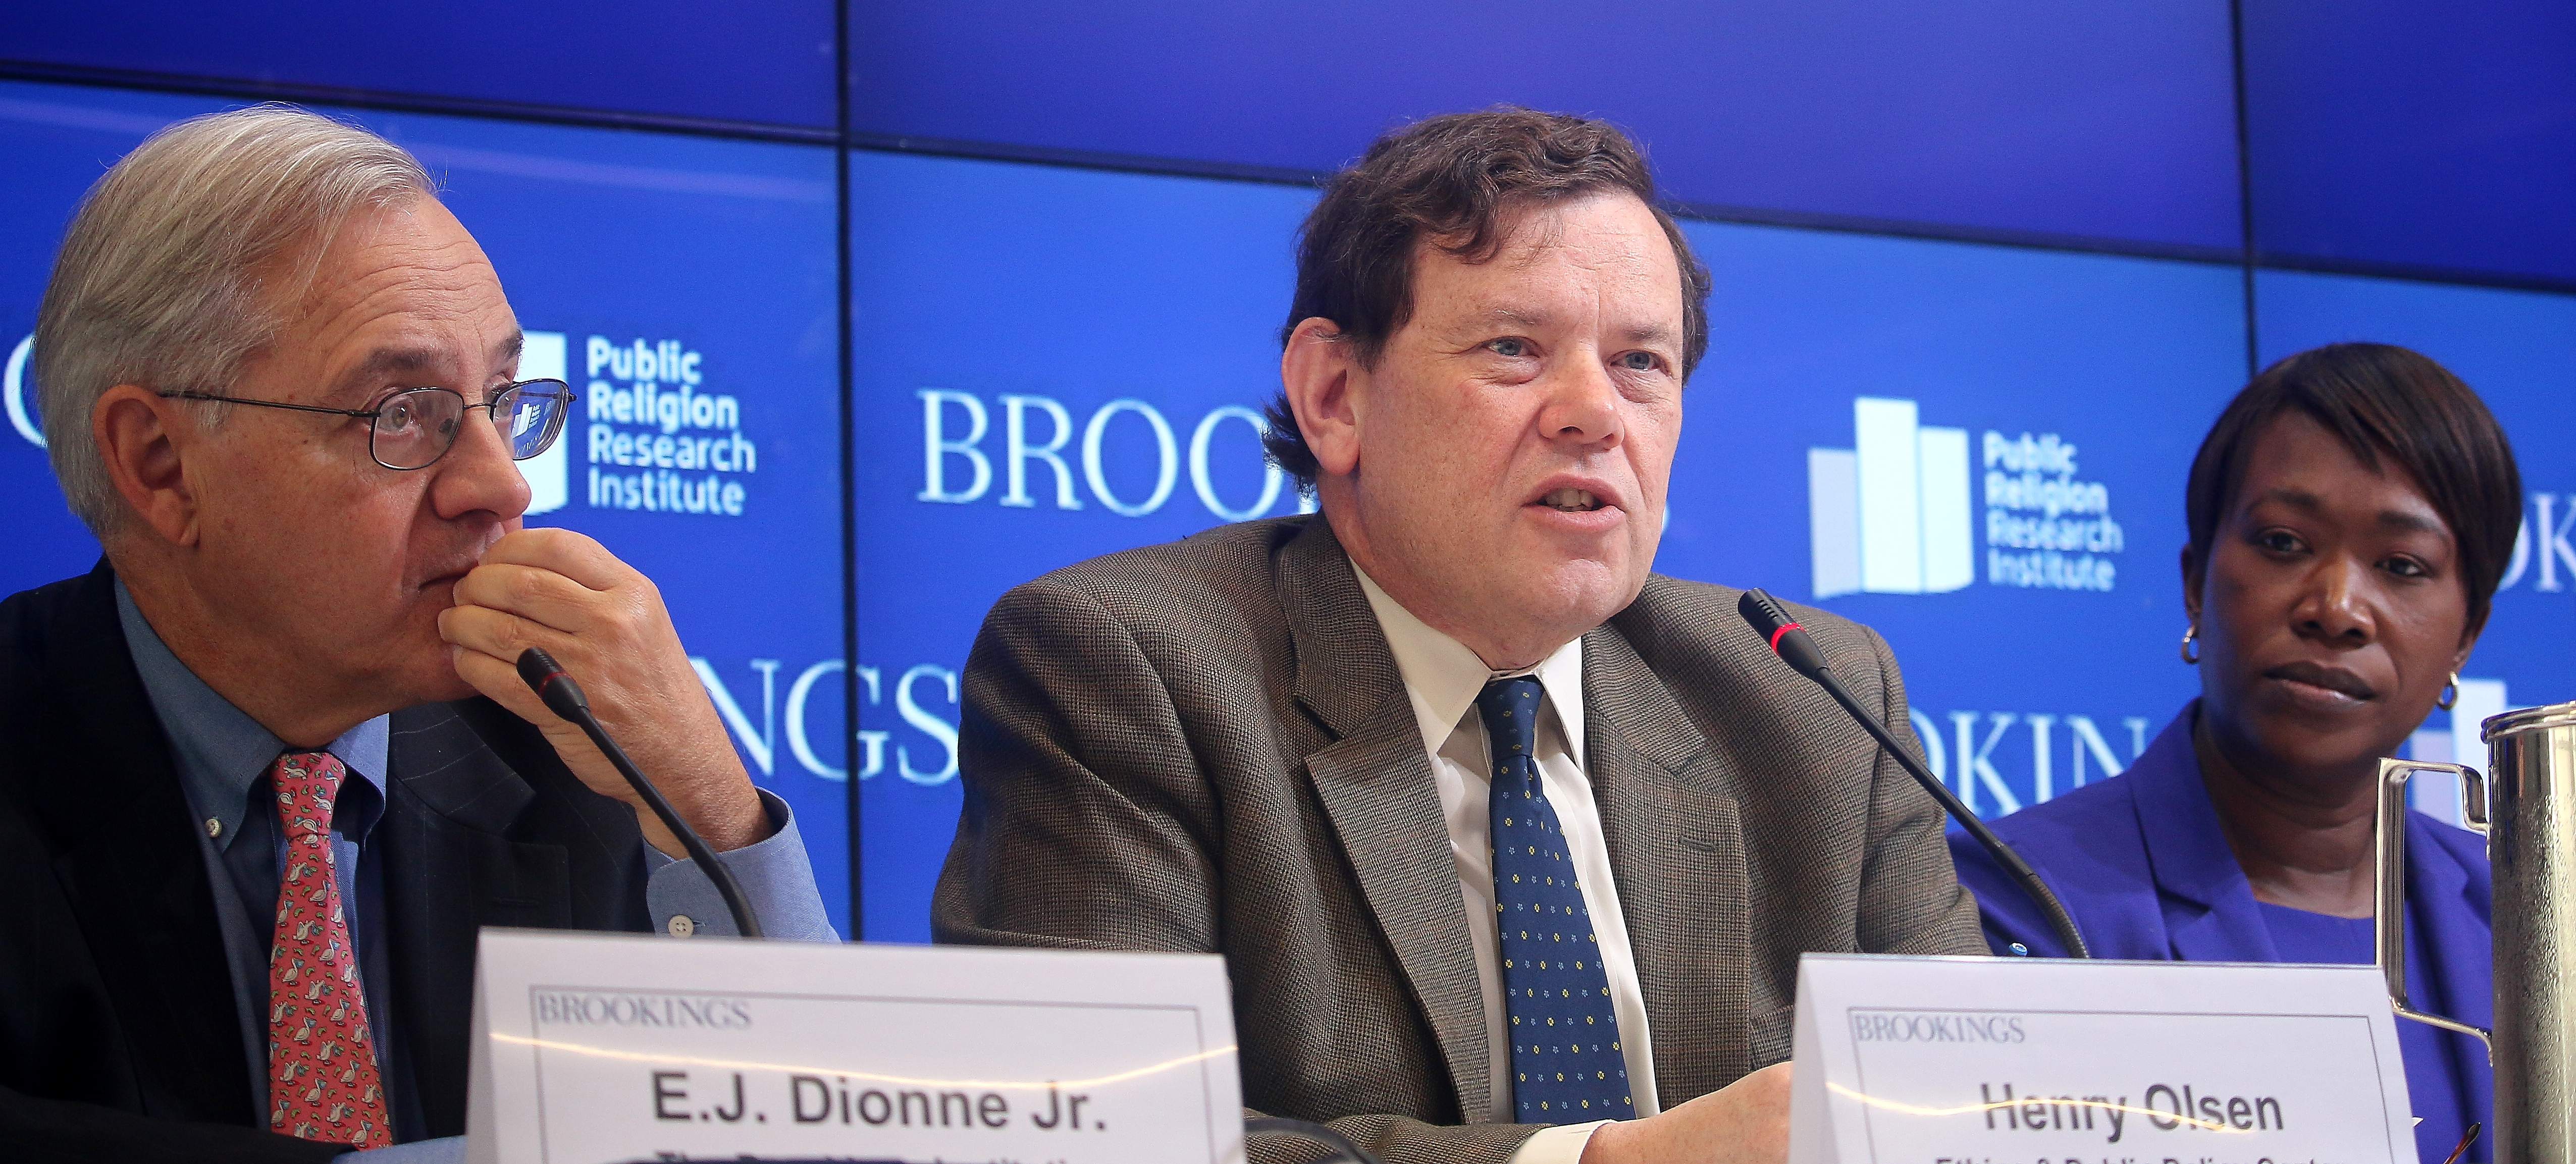 Henry Olsen (C), senior fellow, Ethics & Public Policy Center, speaks on the findings from 2015 American Values Survey, as co-moderator E.J. Dionne, Jr. (L), who is senior fellow, at The Brookings Institution, and Joy Reid, who is national correspondent for MSNBC, listen. The event took place at Brookings on Nov. 17. (Gary Feuerberg/Epoch Times)